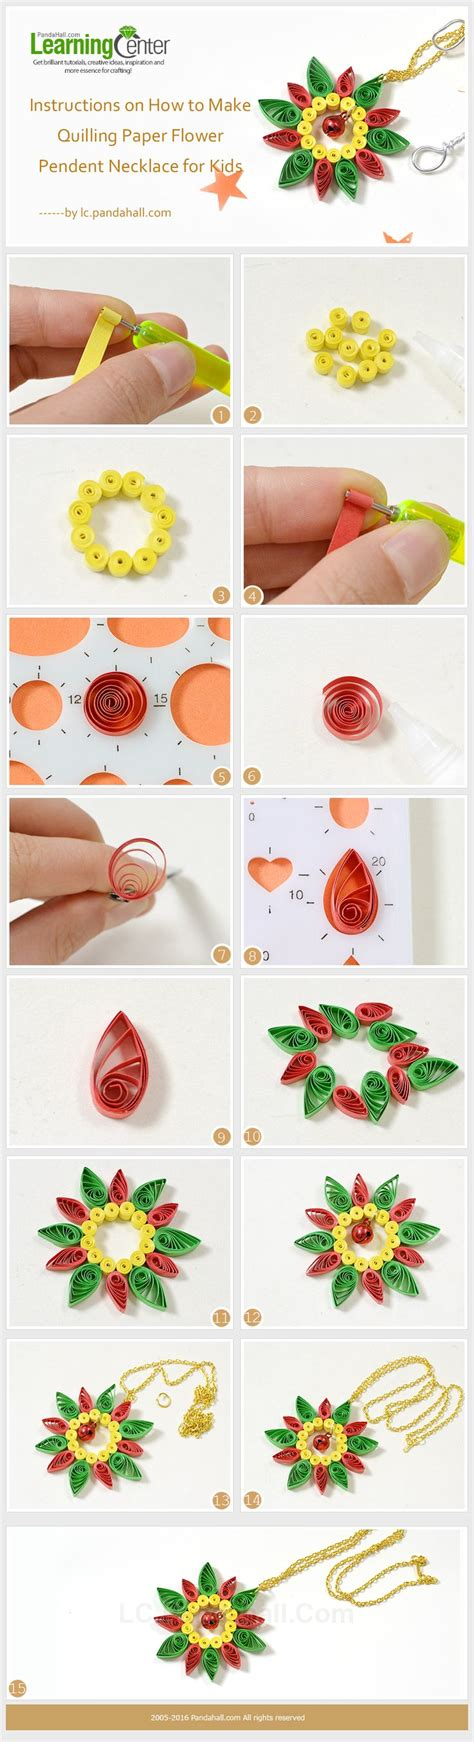 on how to make quilling paper flower pendent